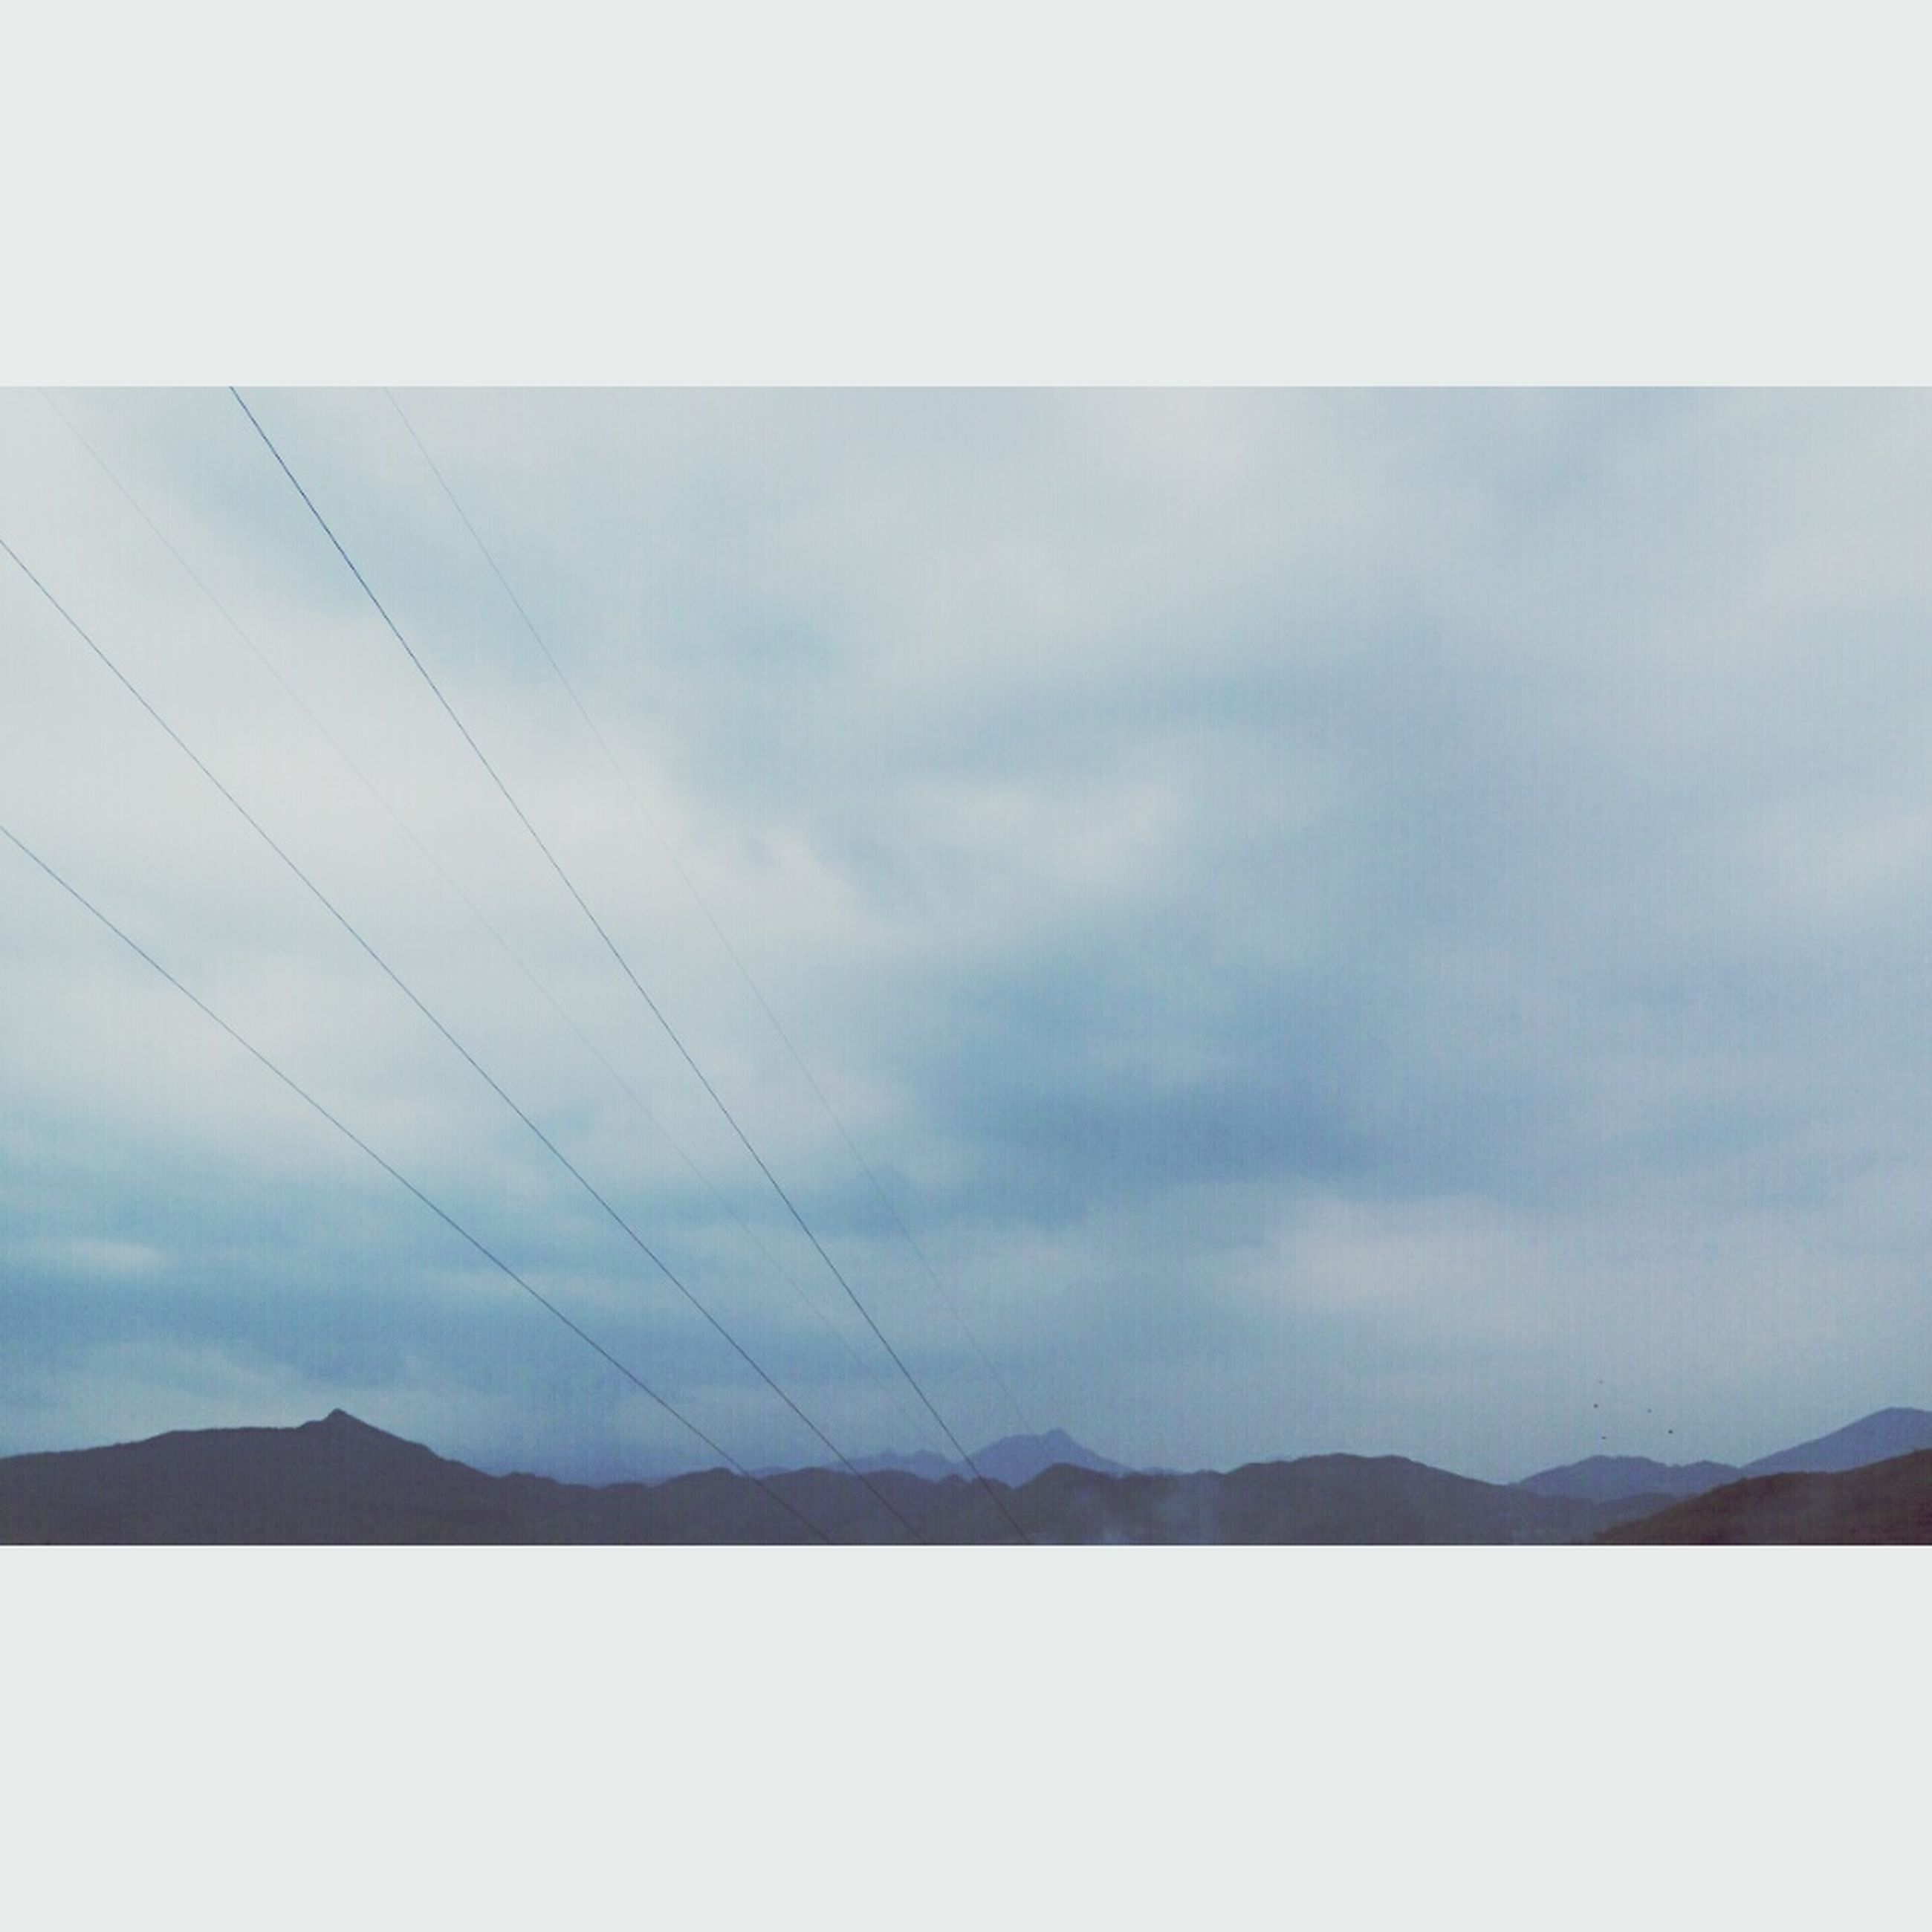 sky, transfer print, cloud - sky, low angle view, power line, tranquility, scenics, tranquil scene, auto post production filter, cloudy, beauty in nature, nature, cloud, mountain, connection, electricity pylon, cable, outdoors, weather, no people